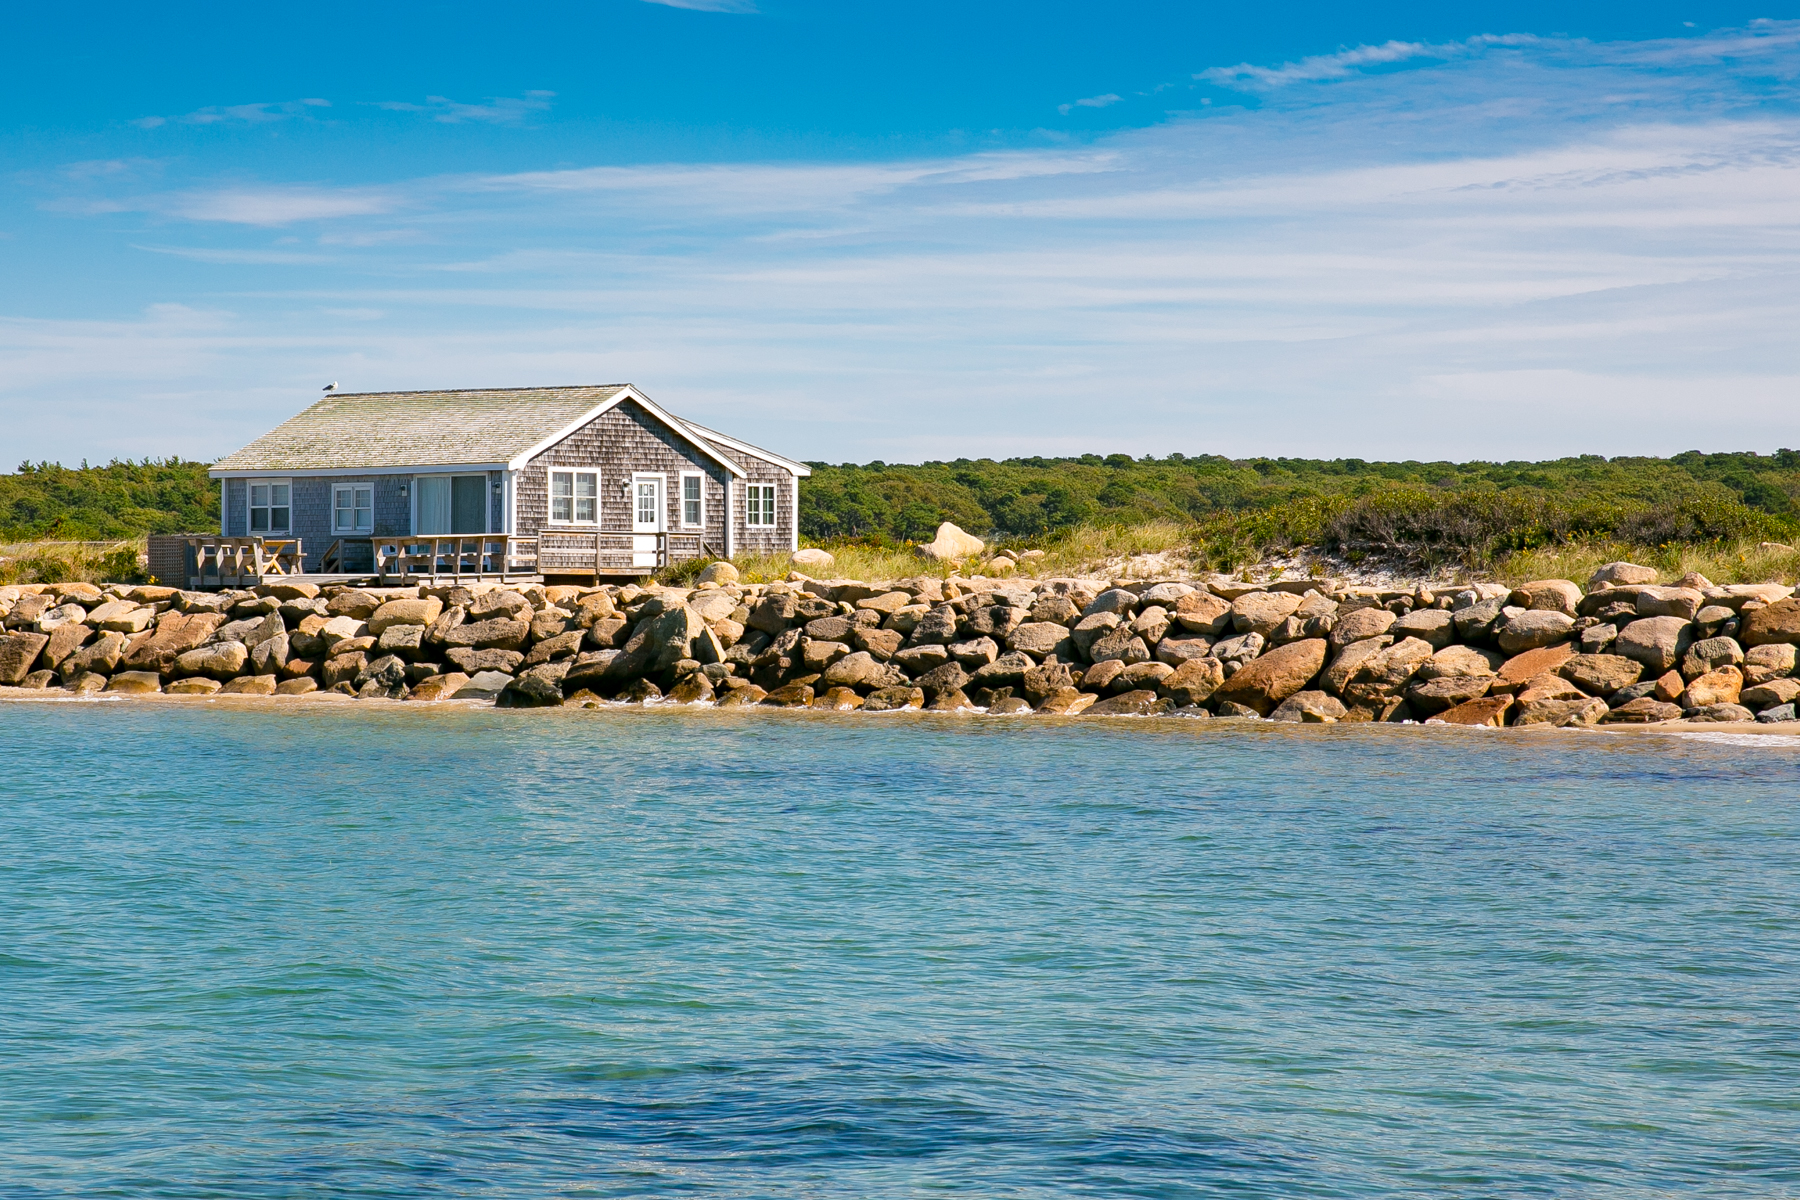 Single Family Home for Sale at Martha's Vineyard Beach House 681 Herring Creek Road Vineyard Haven, Massachusetts, 02568 United States